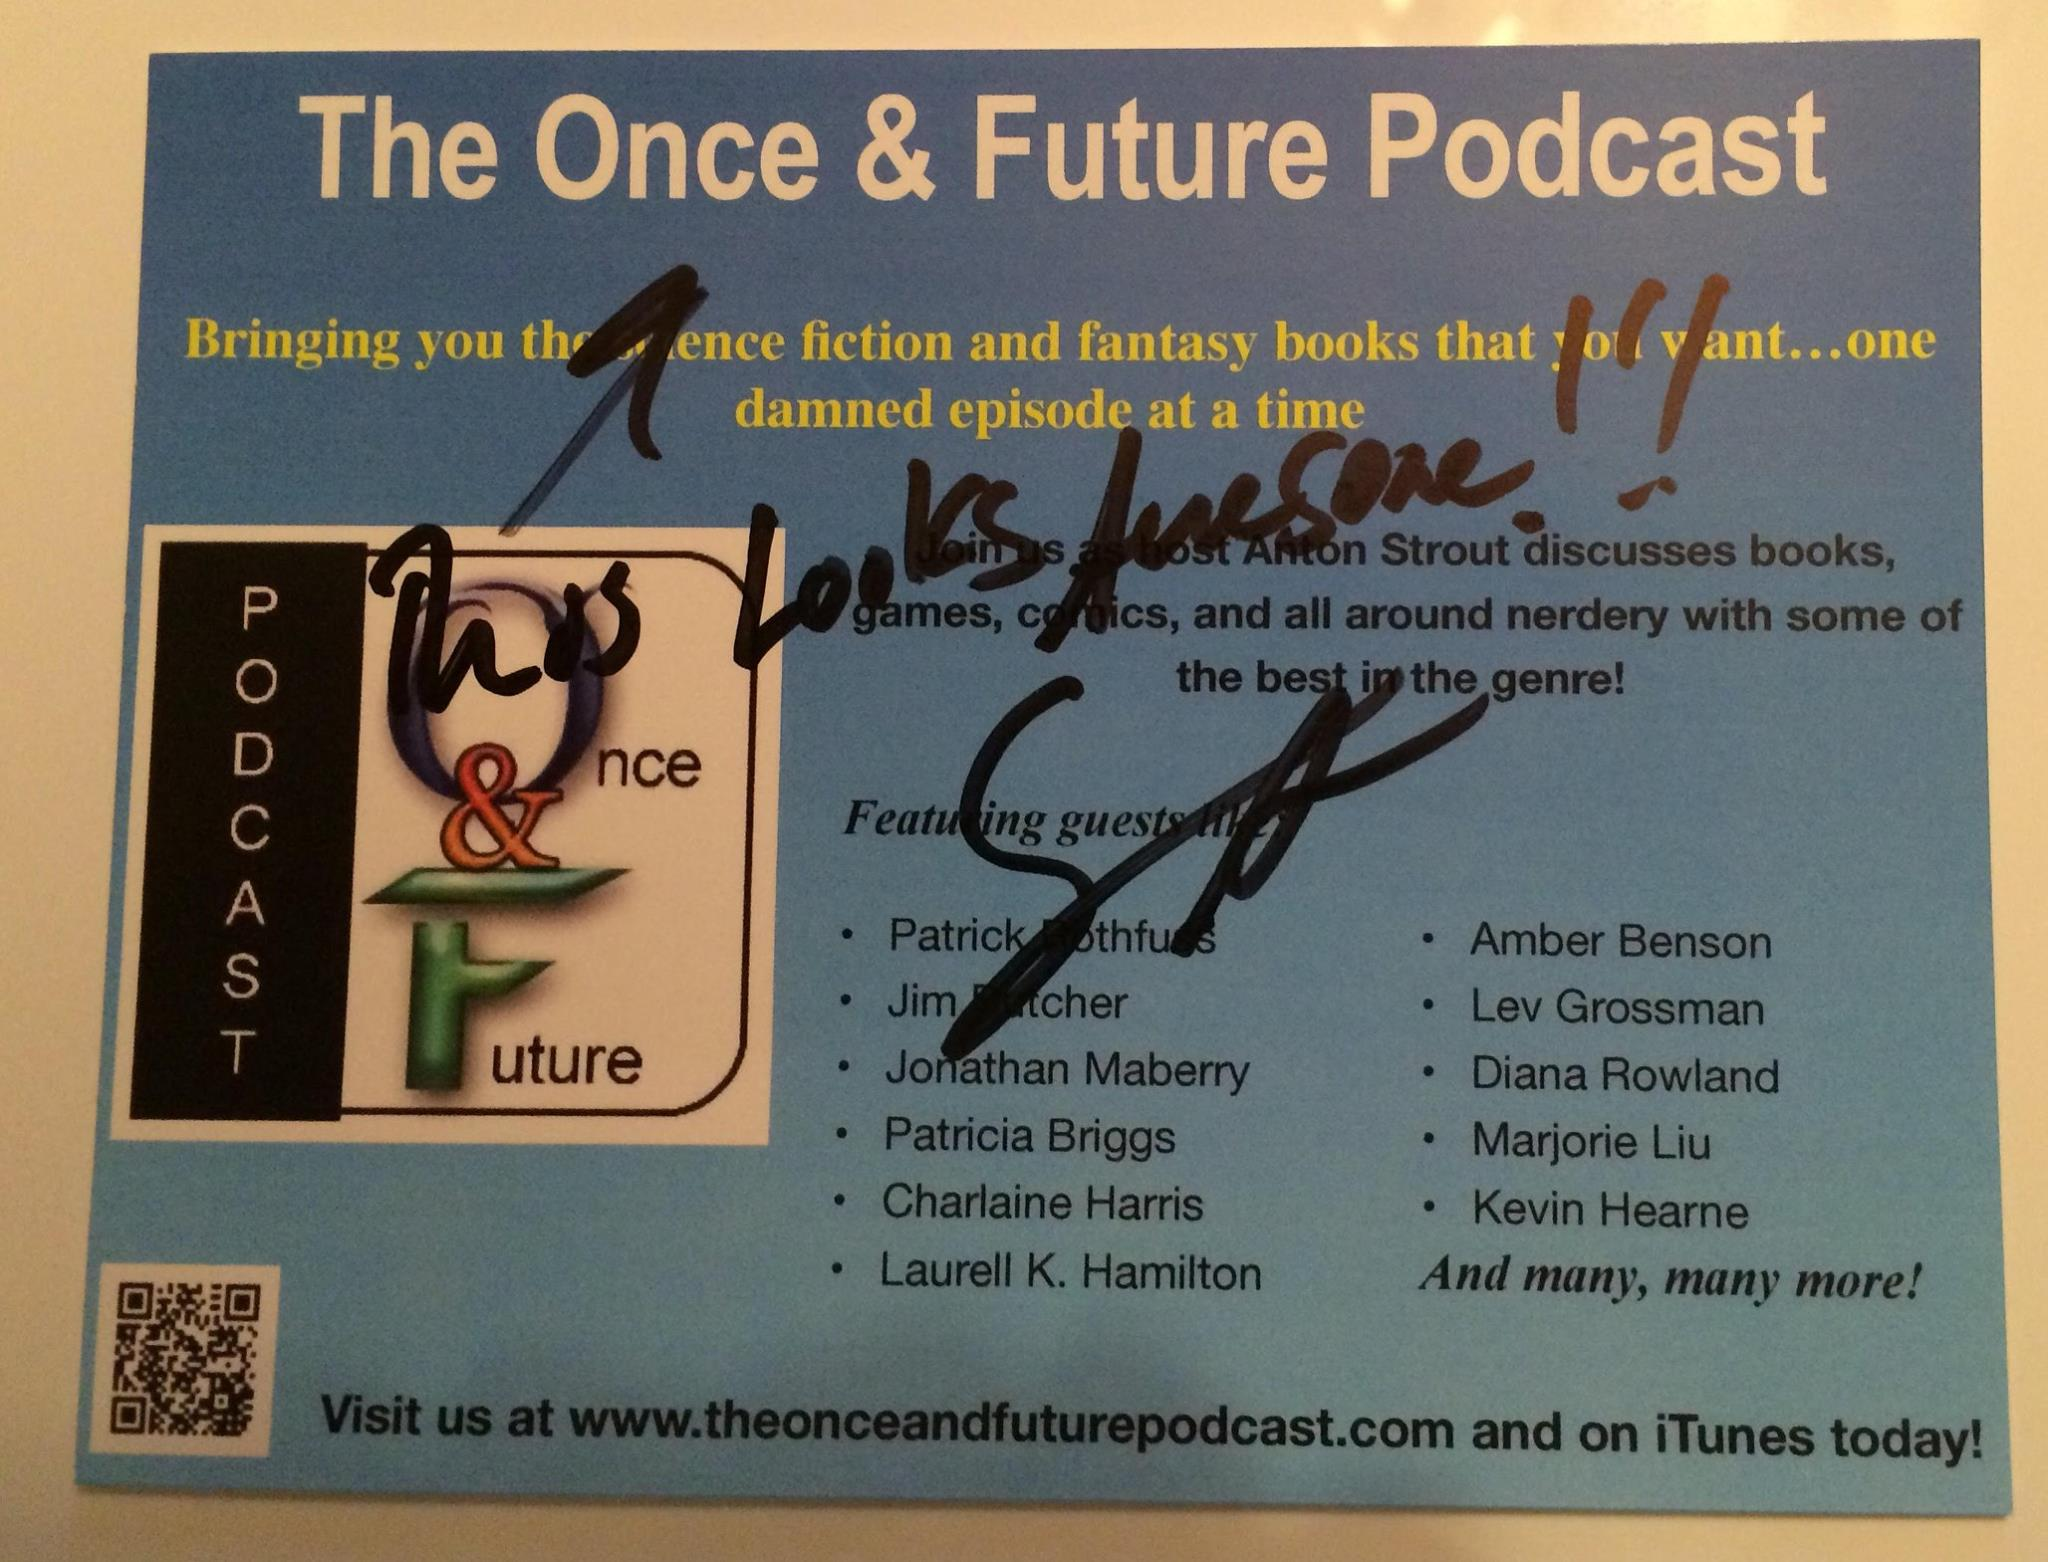 Sean Astin thinks the Once and Future Podcast looks pretty keen!